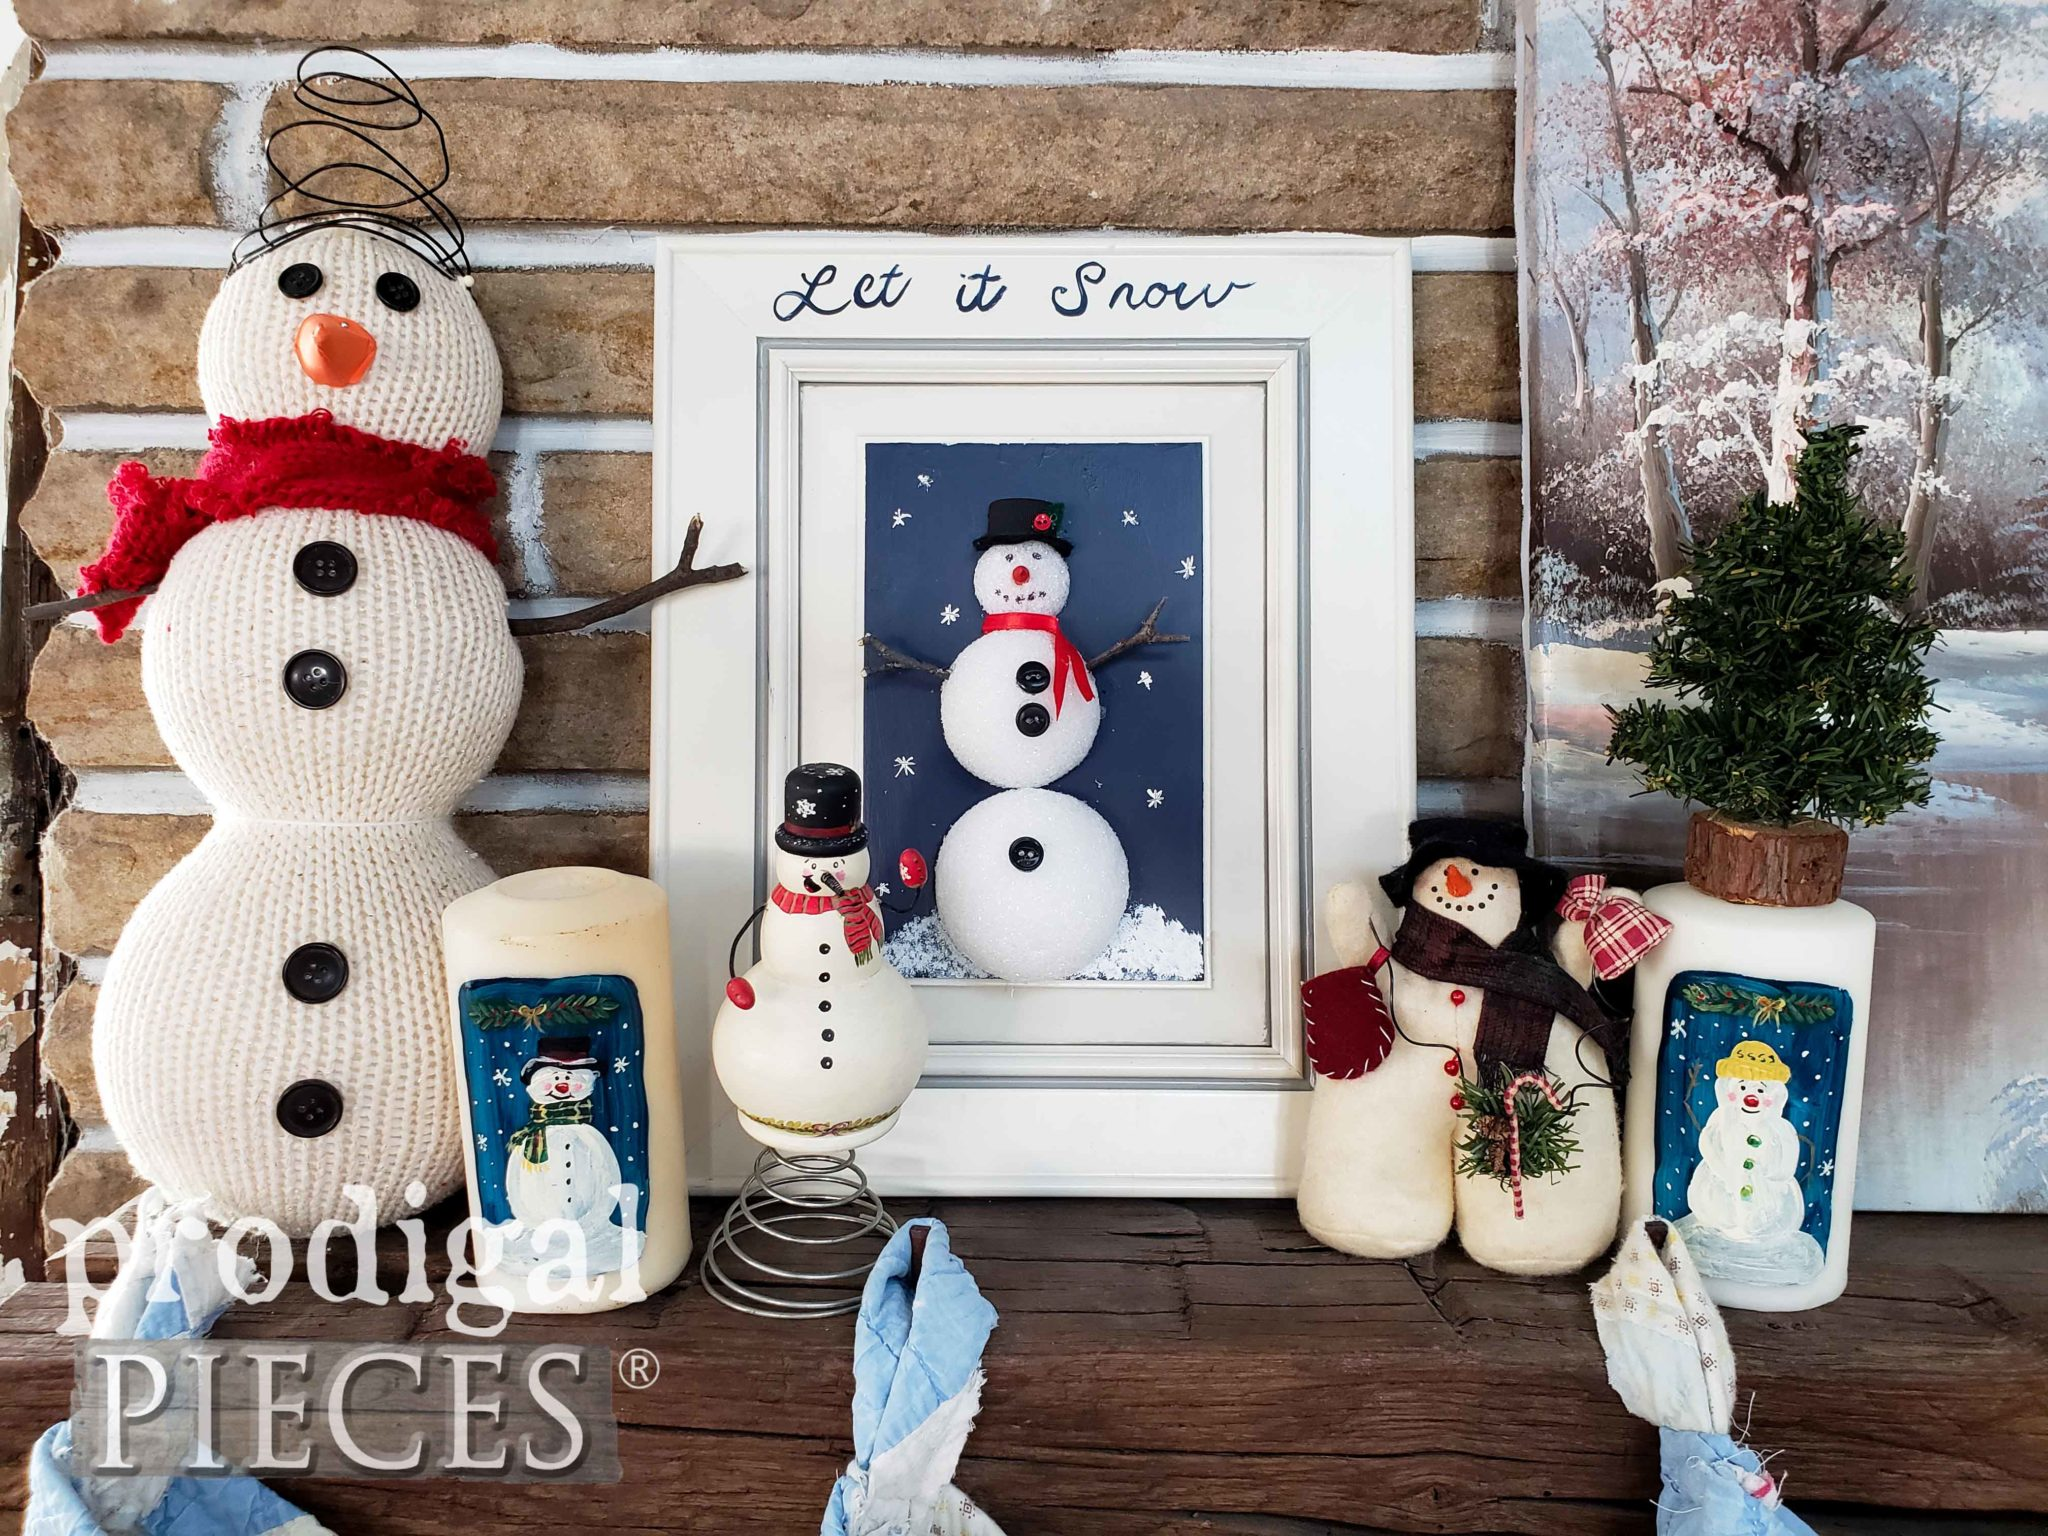 DIY Snowman Art from Upcycled Cupboard Door with Video Tutorial by Prodigal Pieces Kids Create | prodigalpieces.com